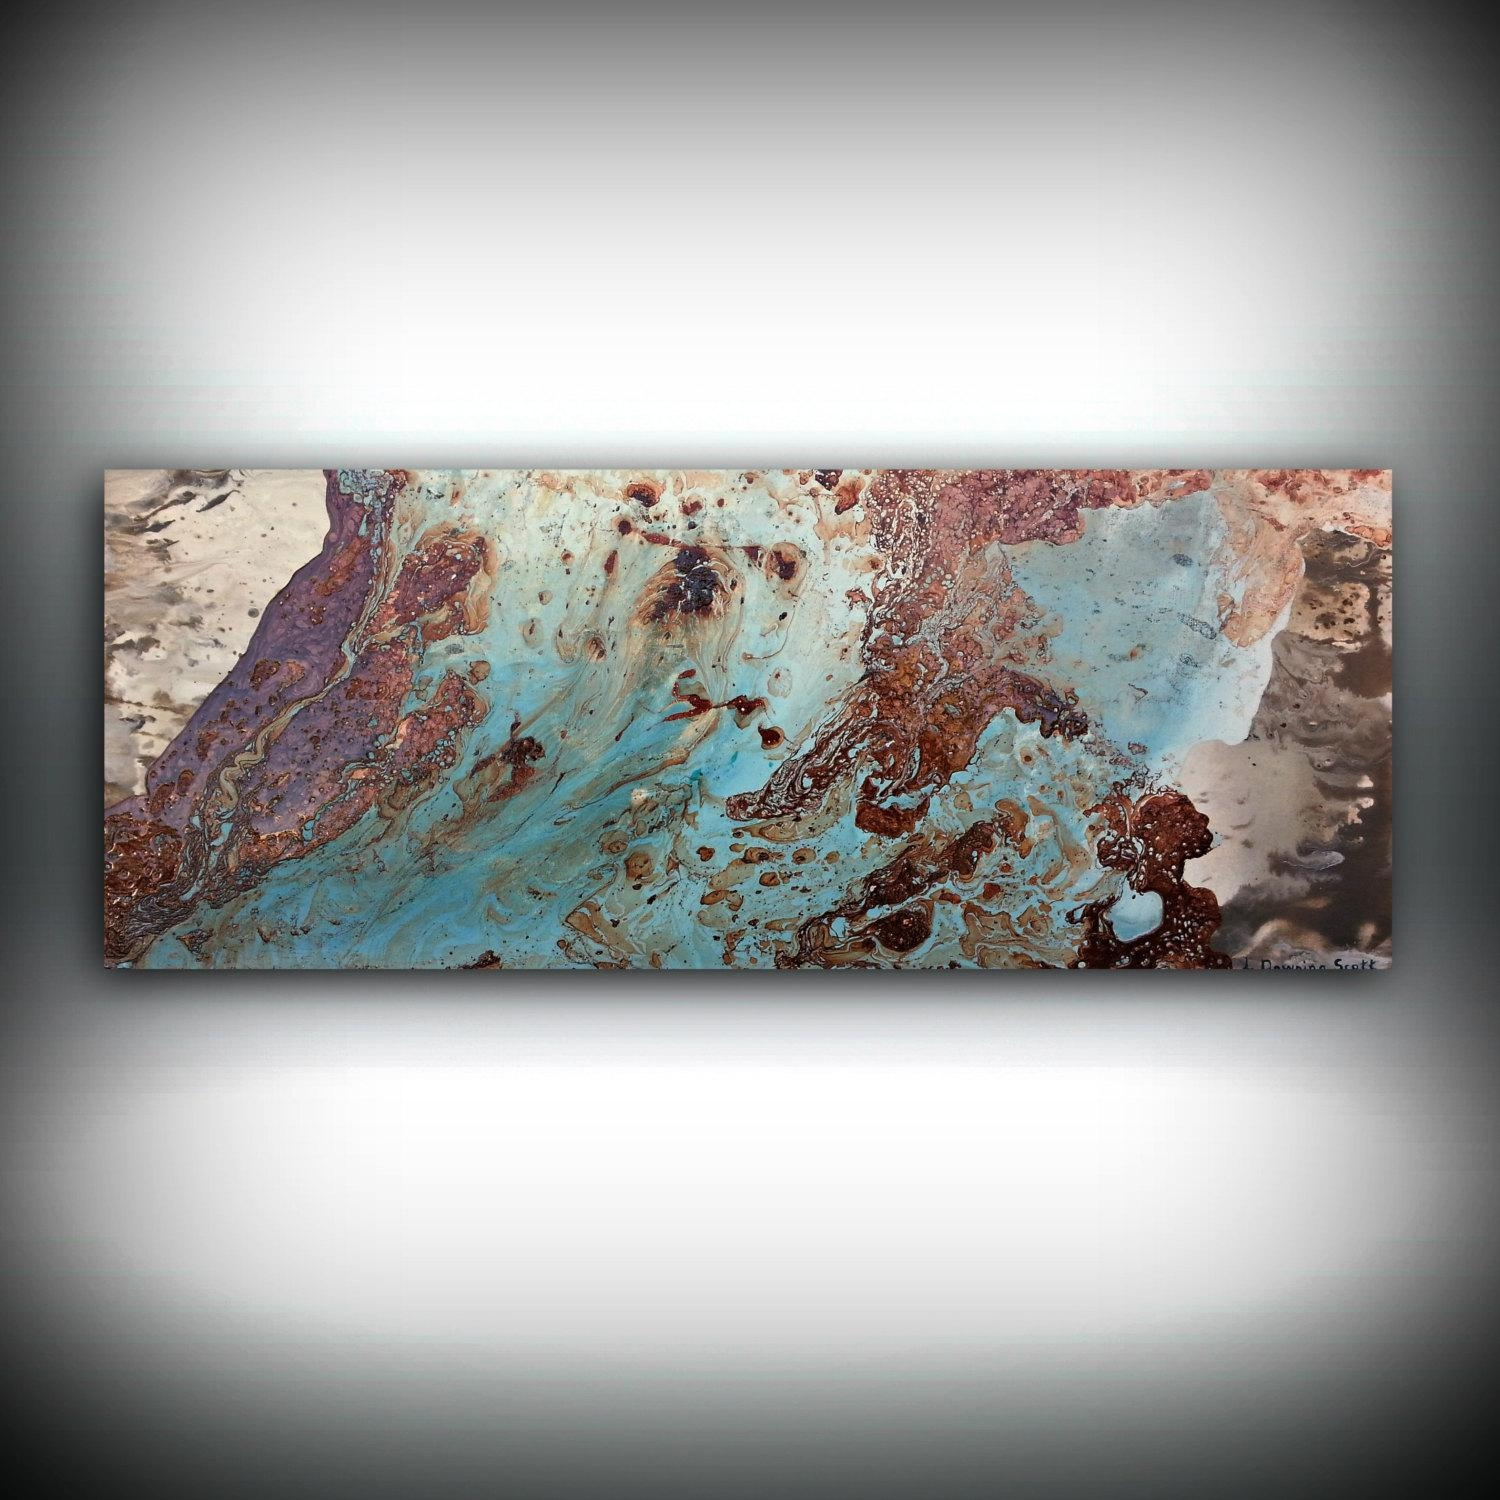 Copper Paintings – L Dawning Scott Fine Art In Large Copper Wall Art (View 16 of 20)